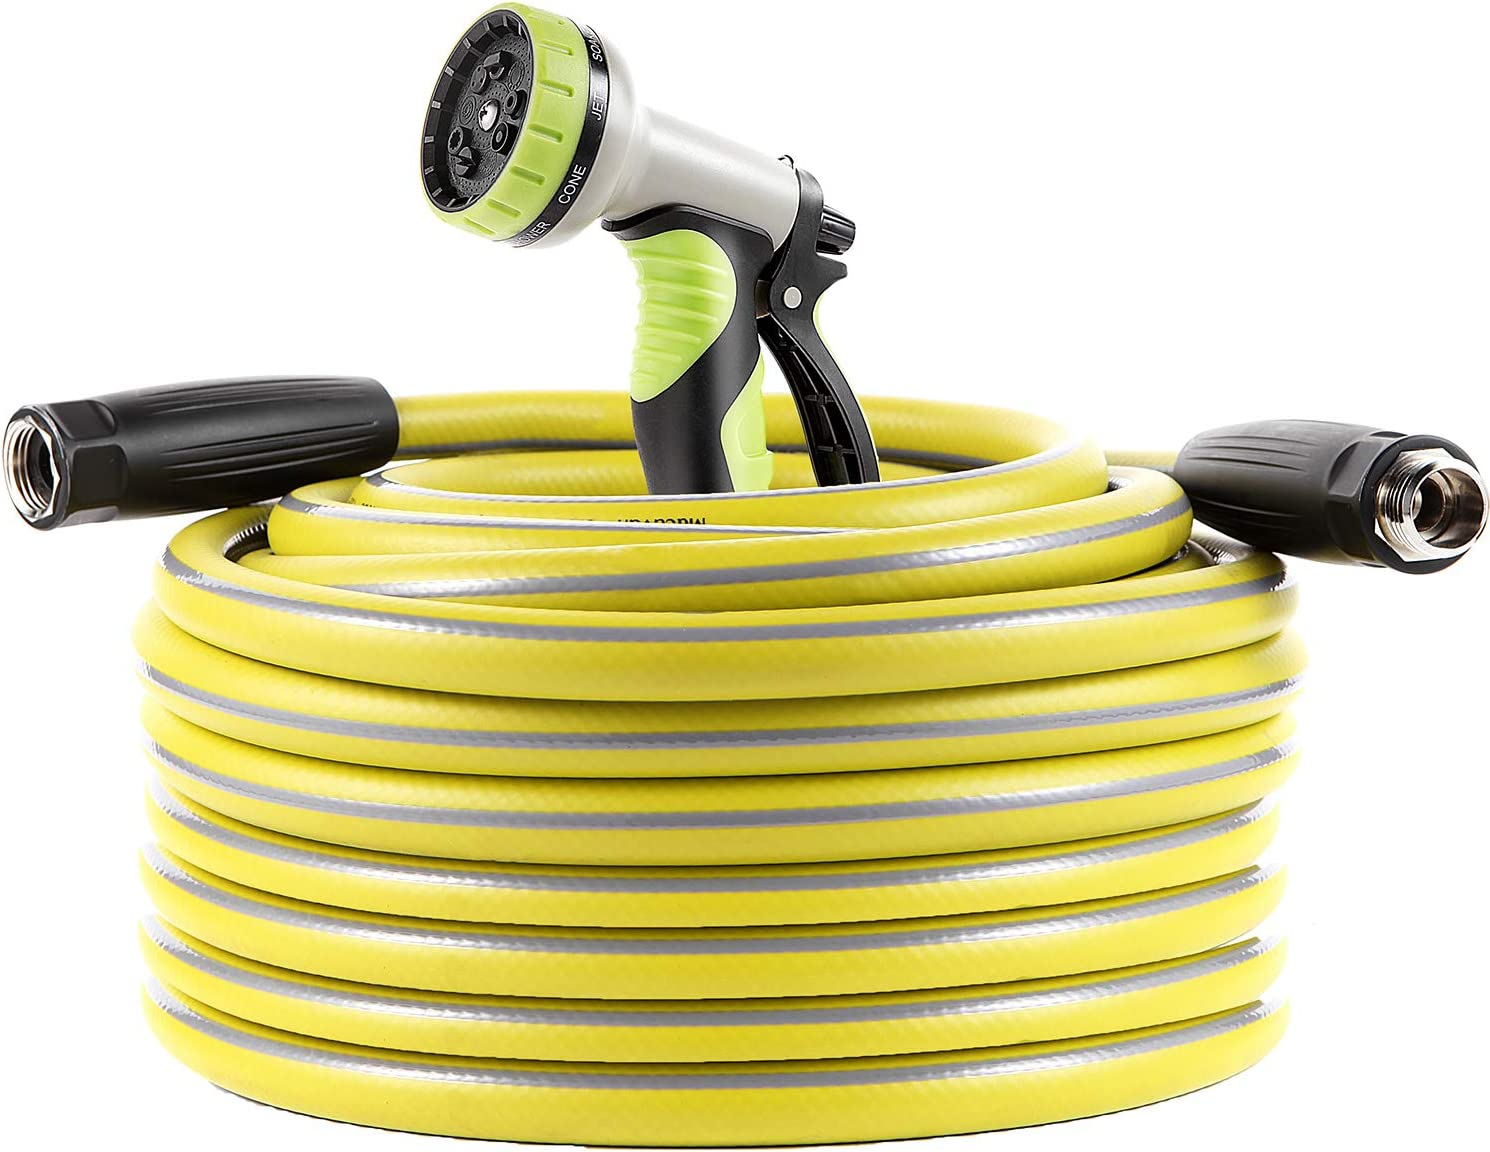 Macuvan Garden Hose 100 ft Heavy Duty-Water Hose with 9 Way Spray Nozzle and Flexible 4 Layers Hybrid-3/4'' Nickel Plated Brass Fittings-5/8'' Inner Core-Lead-Free Outdoor Durable Lightweight Pipe Set